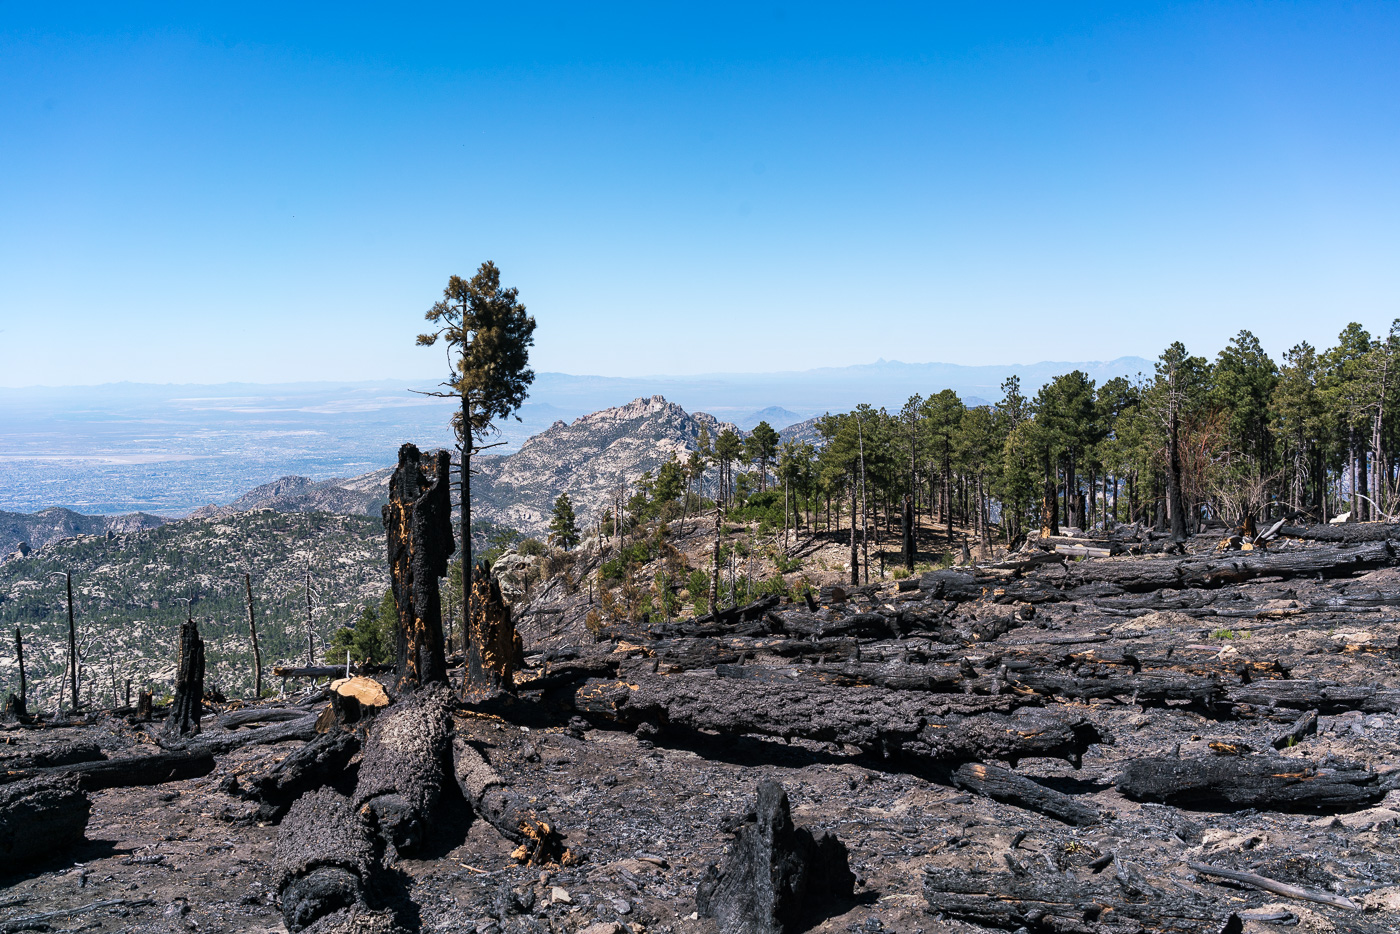 Fire damage along the Mount Lemmon Trail - probably from the Shovel Fire. May 2017.